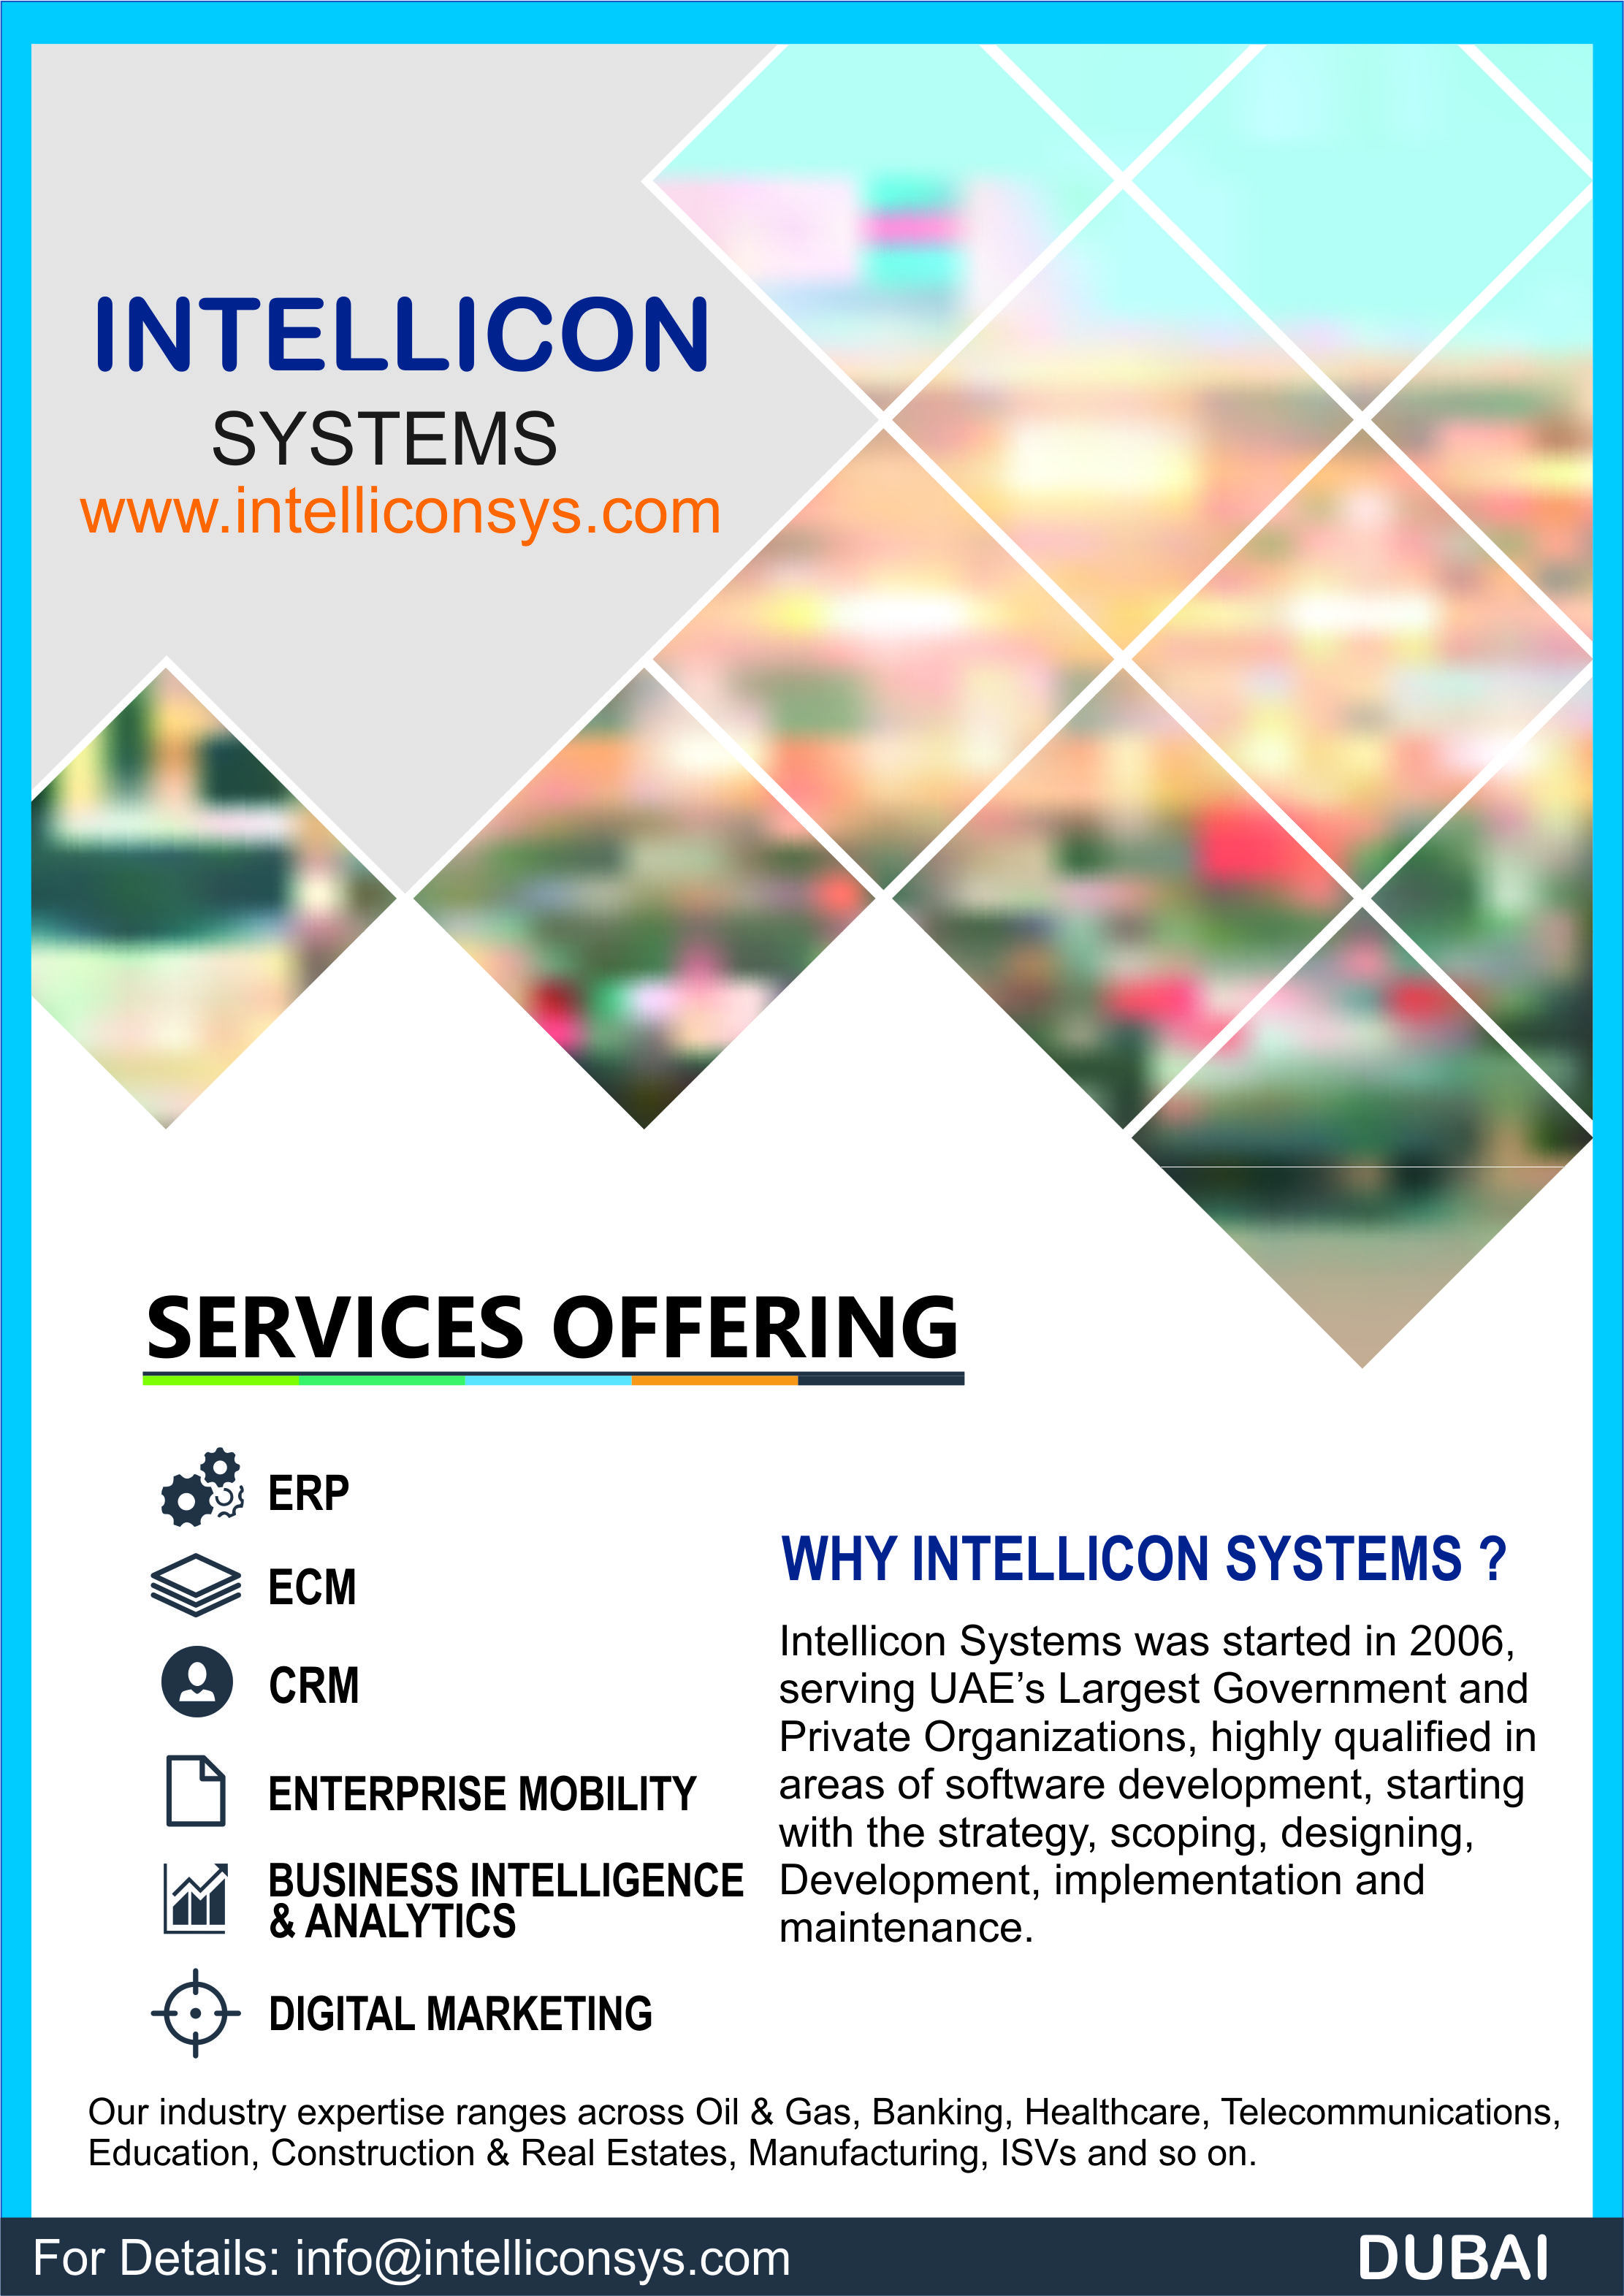 Intellicon Systems Service Offerings